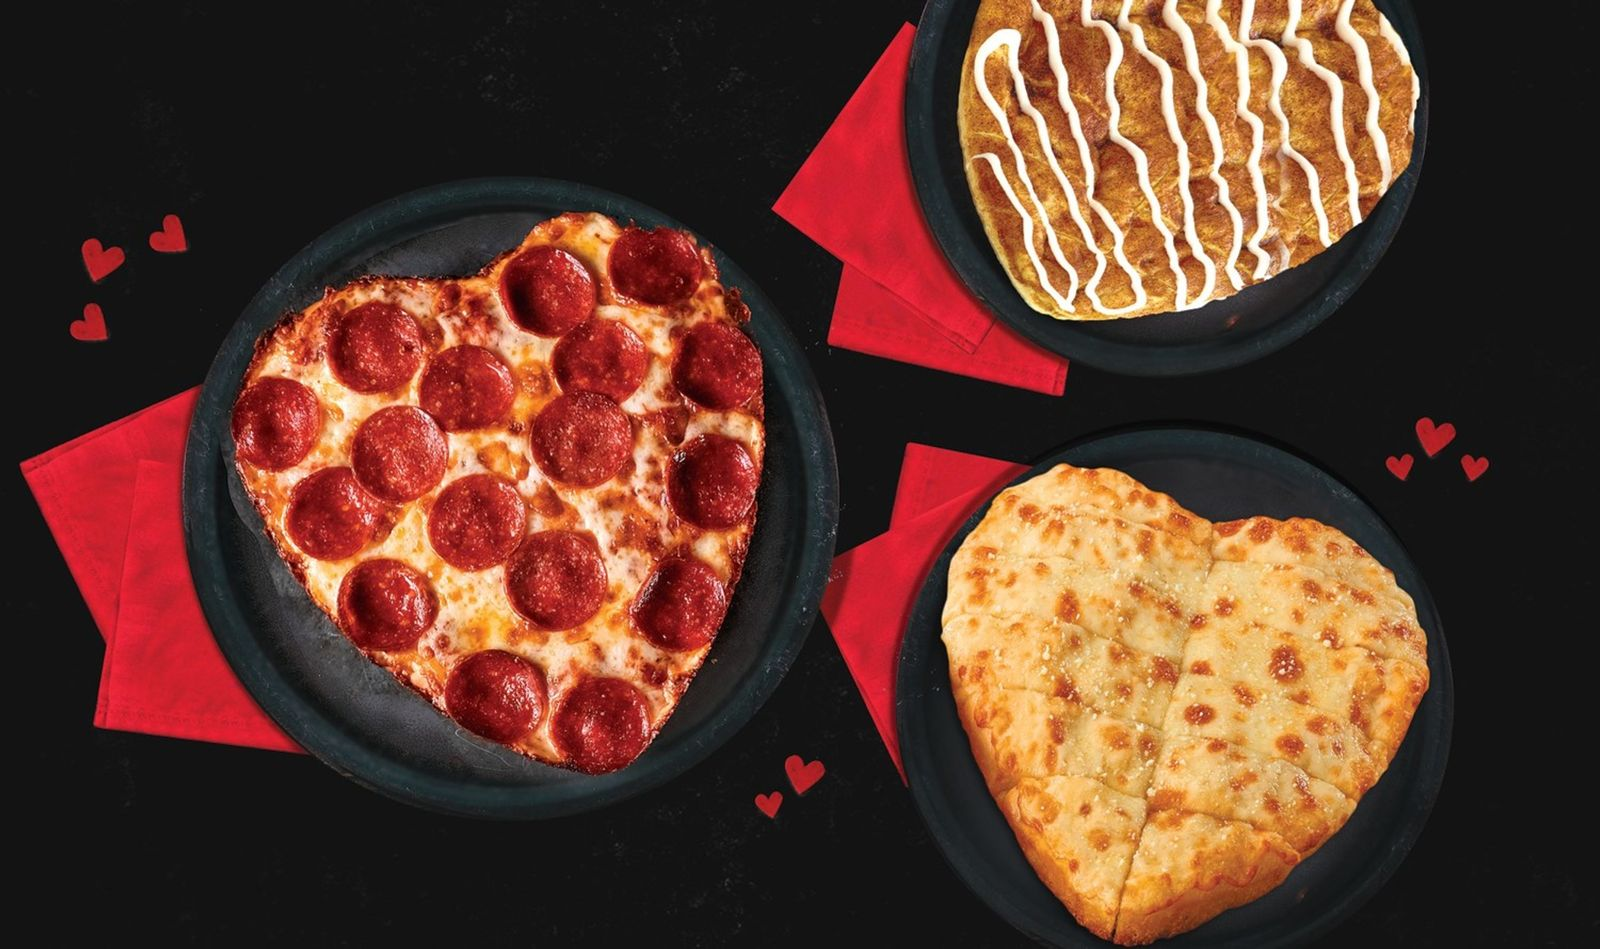 Share the Love on Valentine's Day with Jet's Pizza